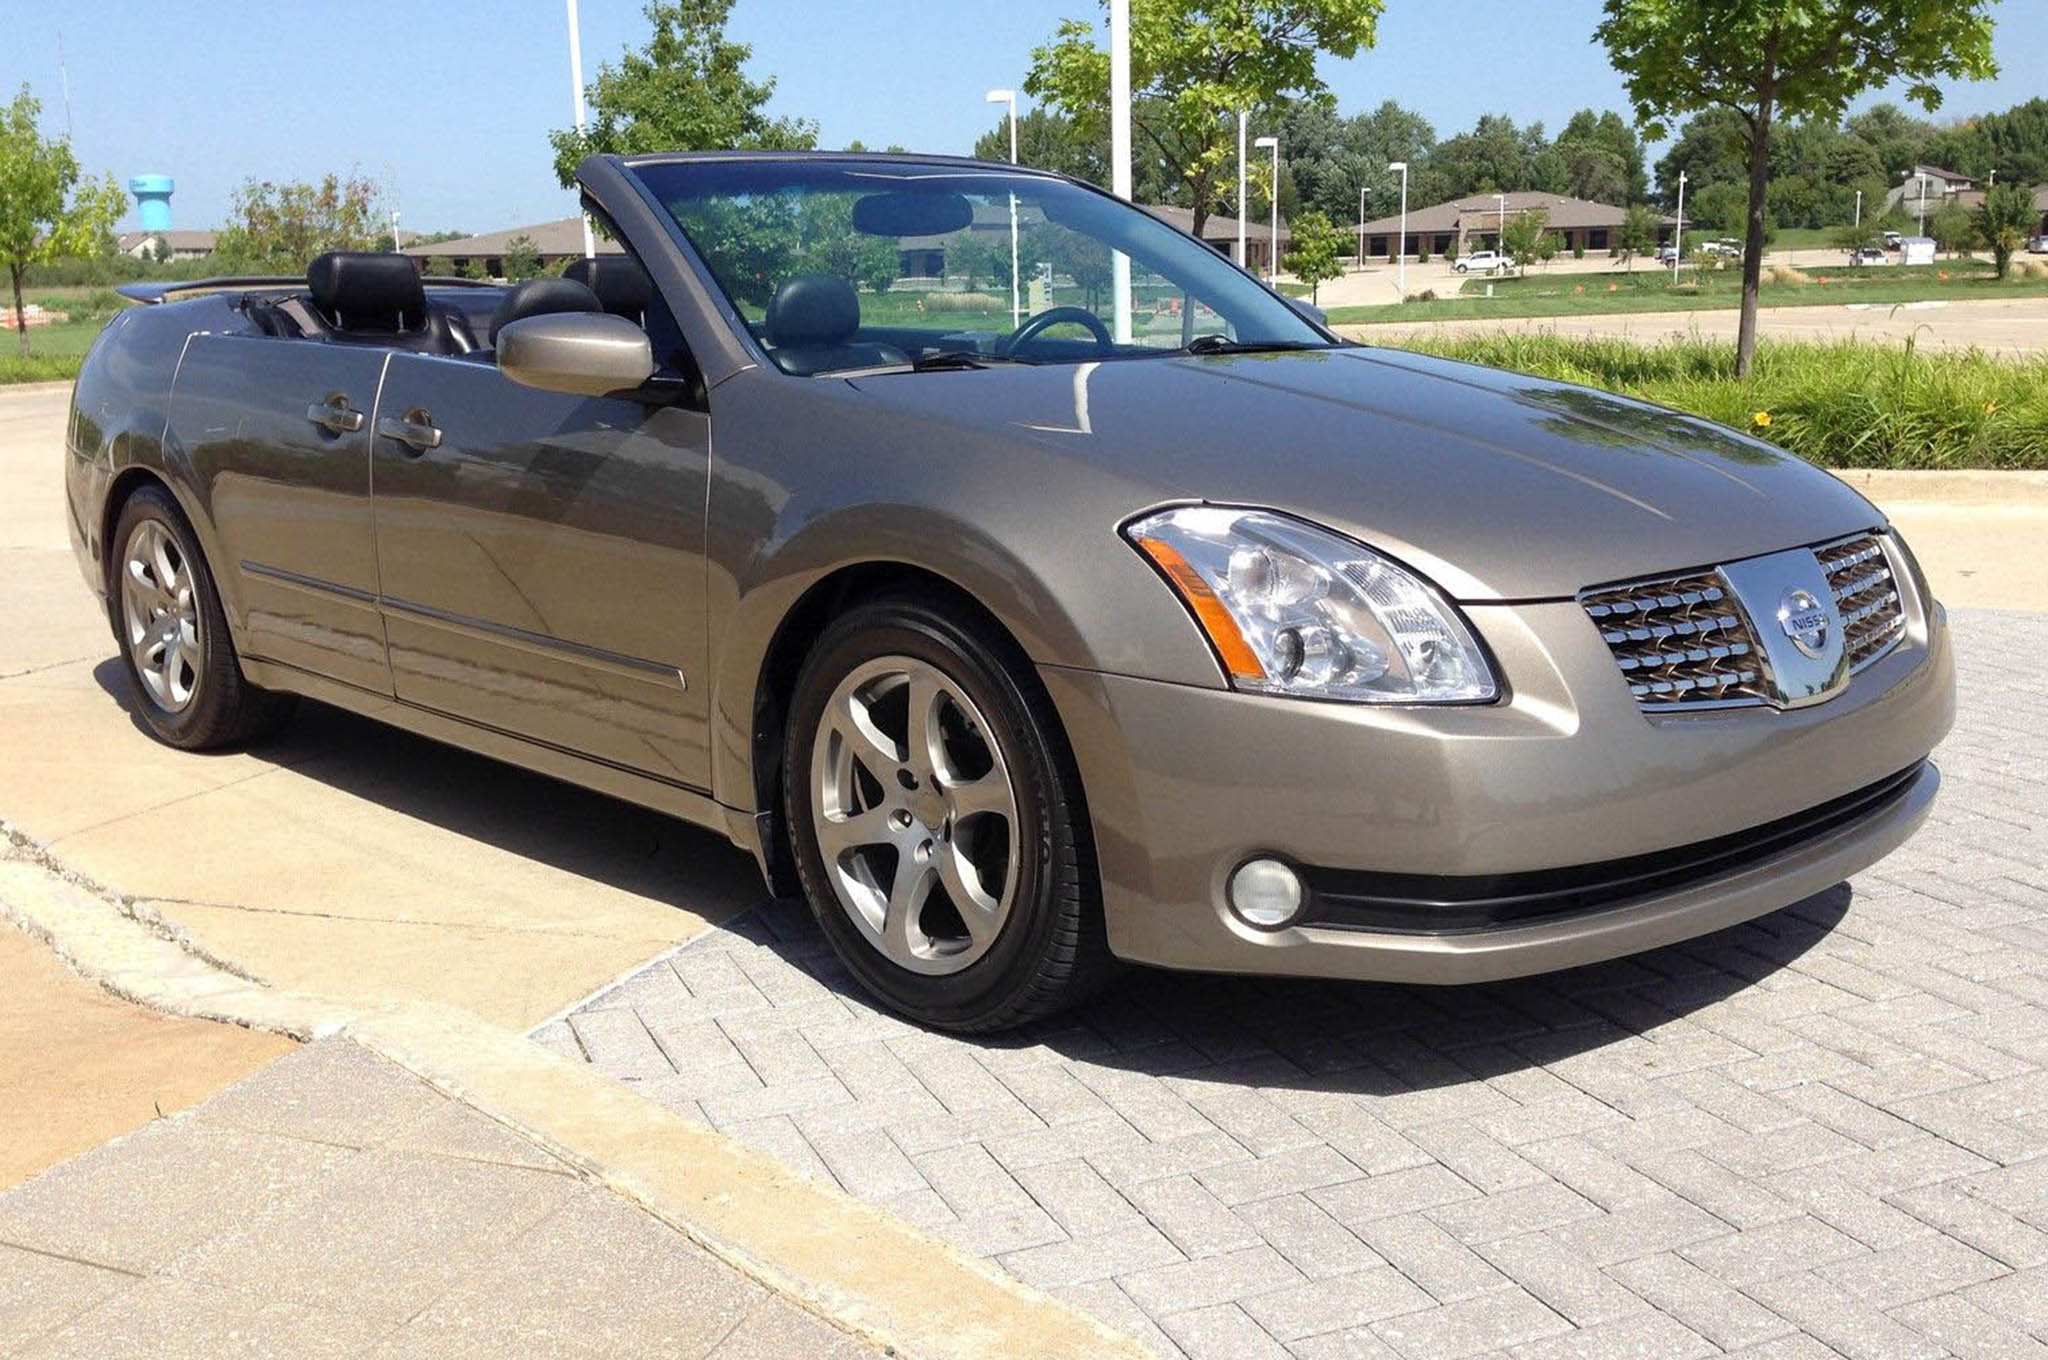 2004 Nissan Maxima Photo Gallery - Latest News, features ...